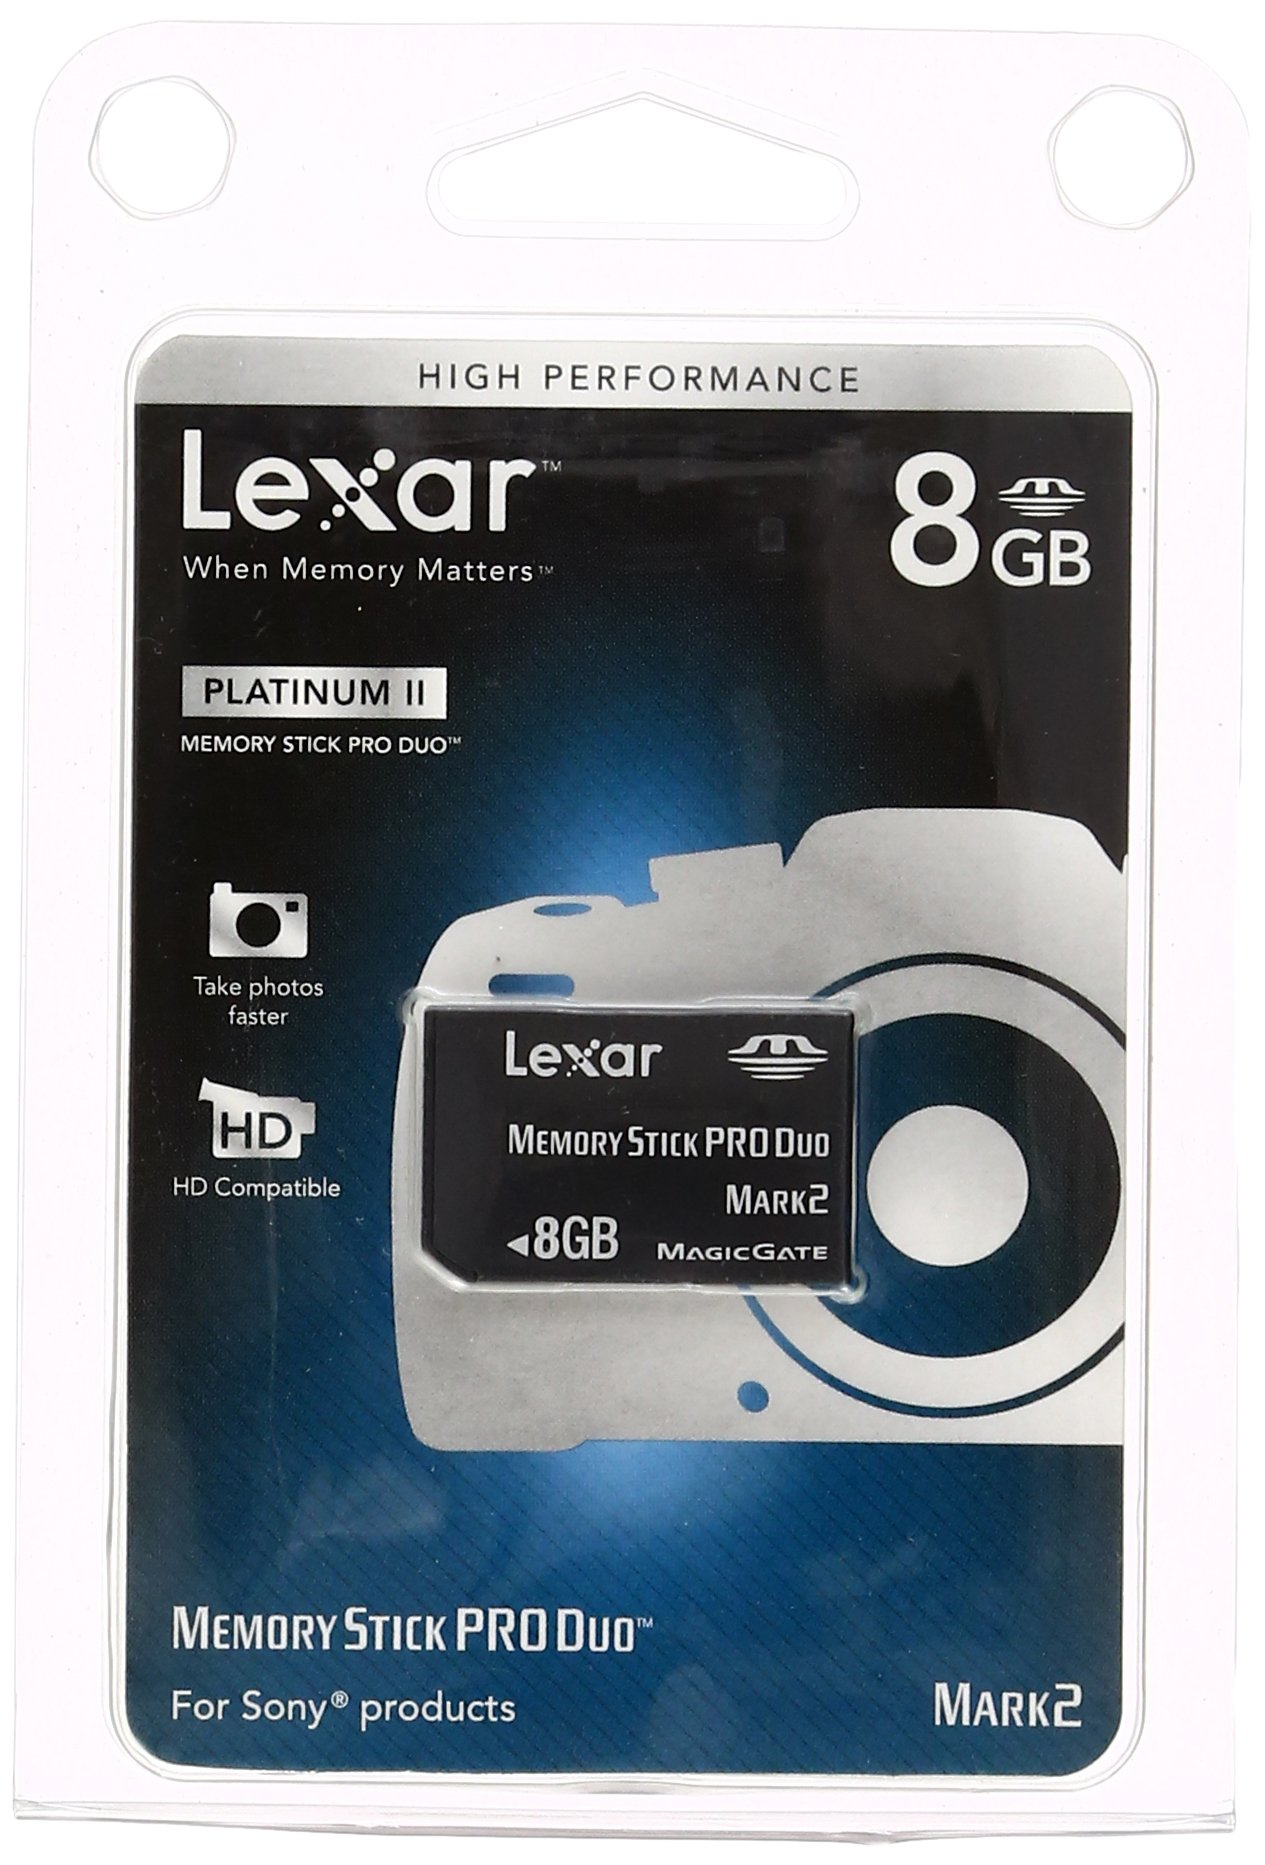 Lexar Platinum II 8GB Memory Stick PRO Duo Memory Card by Chrise